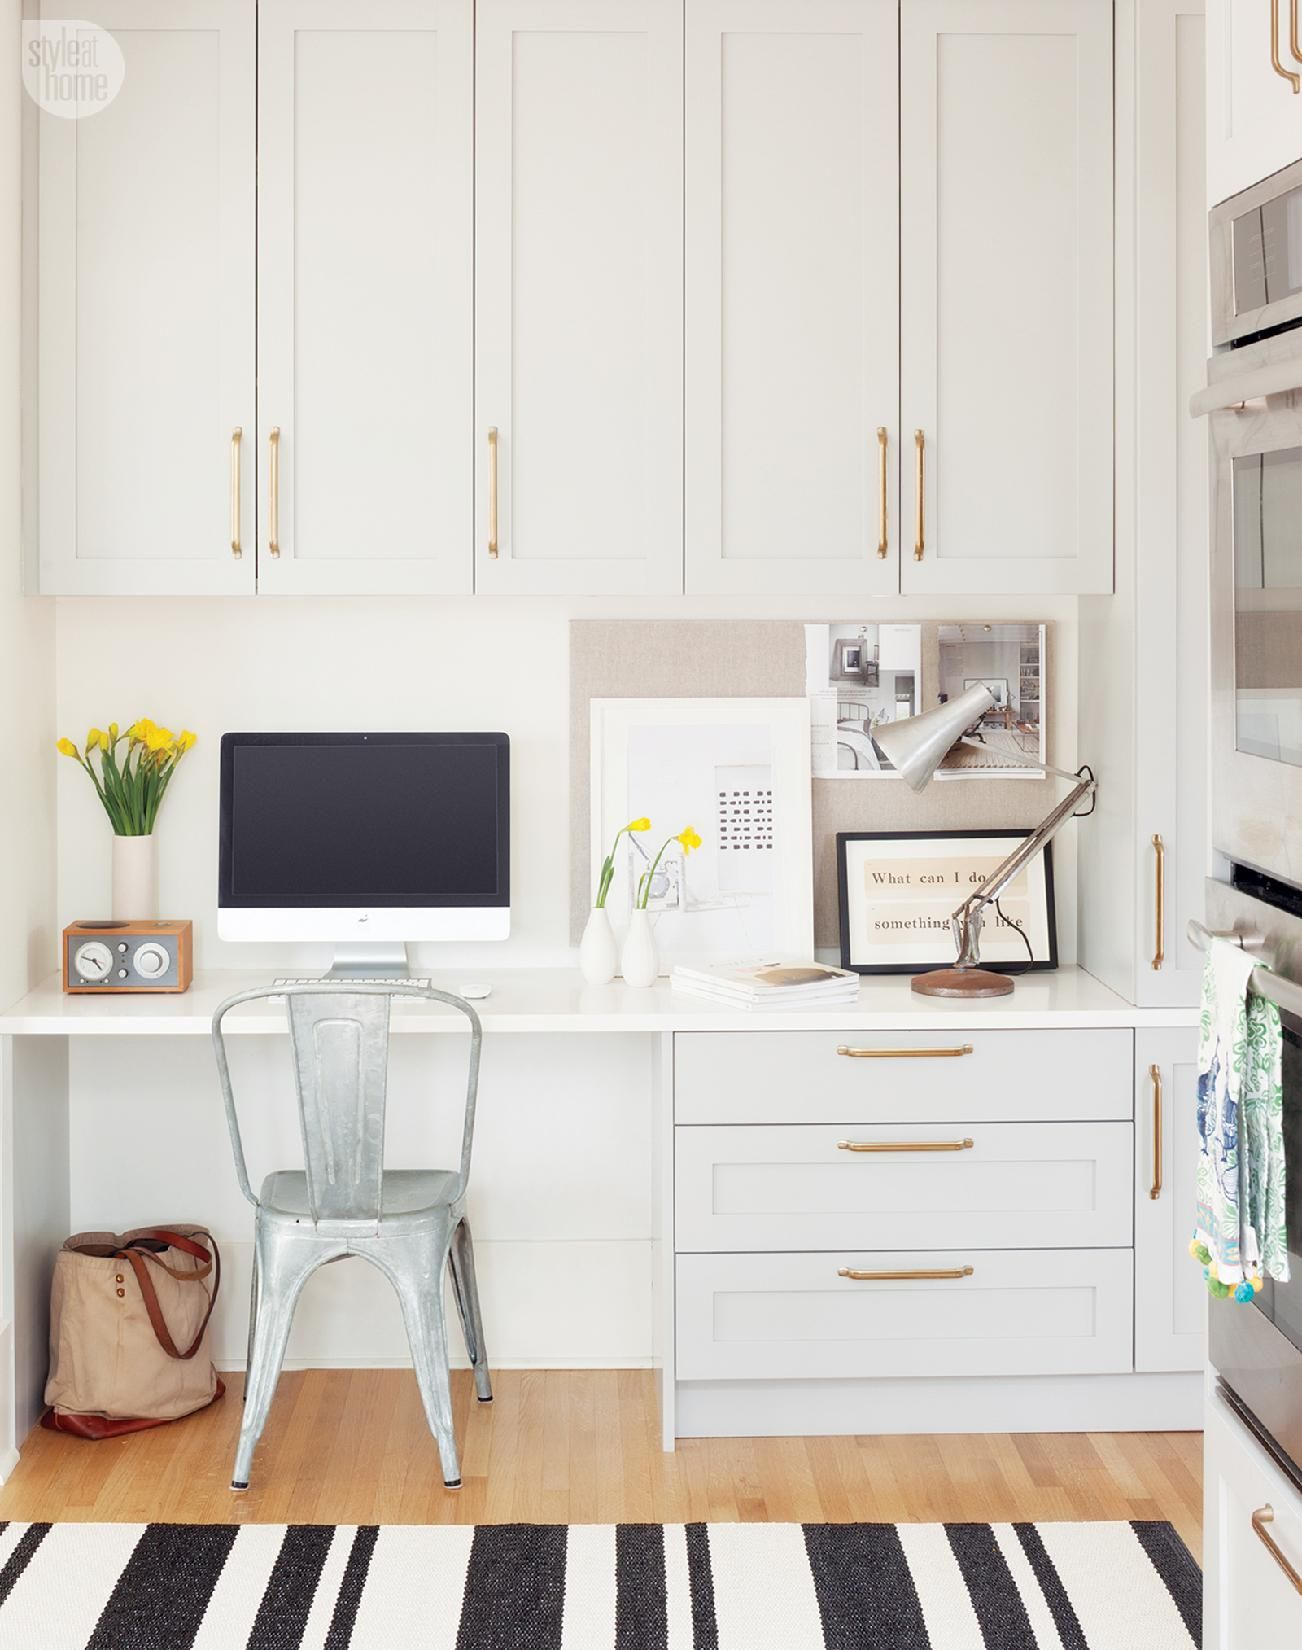 Office Built In Cabinets Ideas 45 - decoratoo